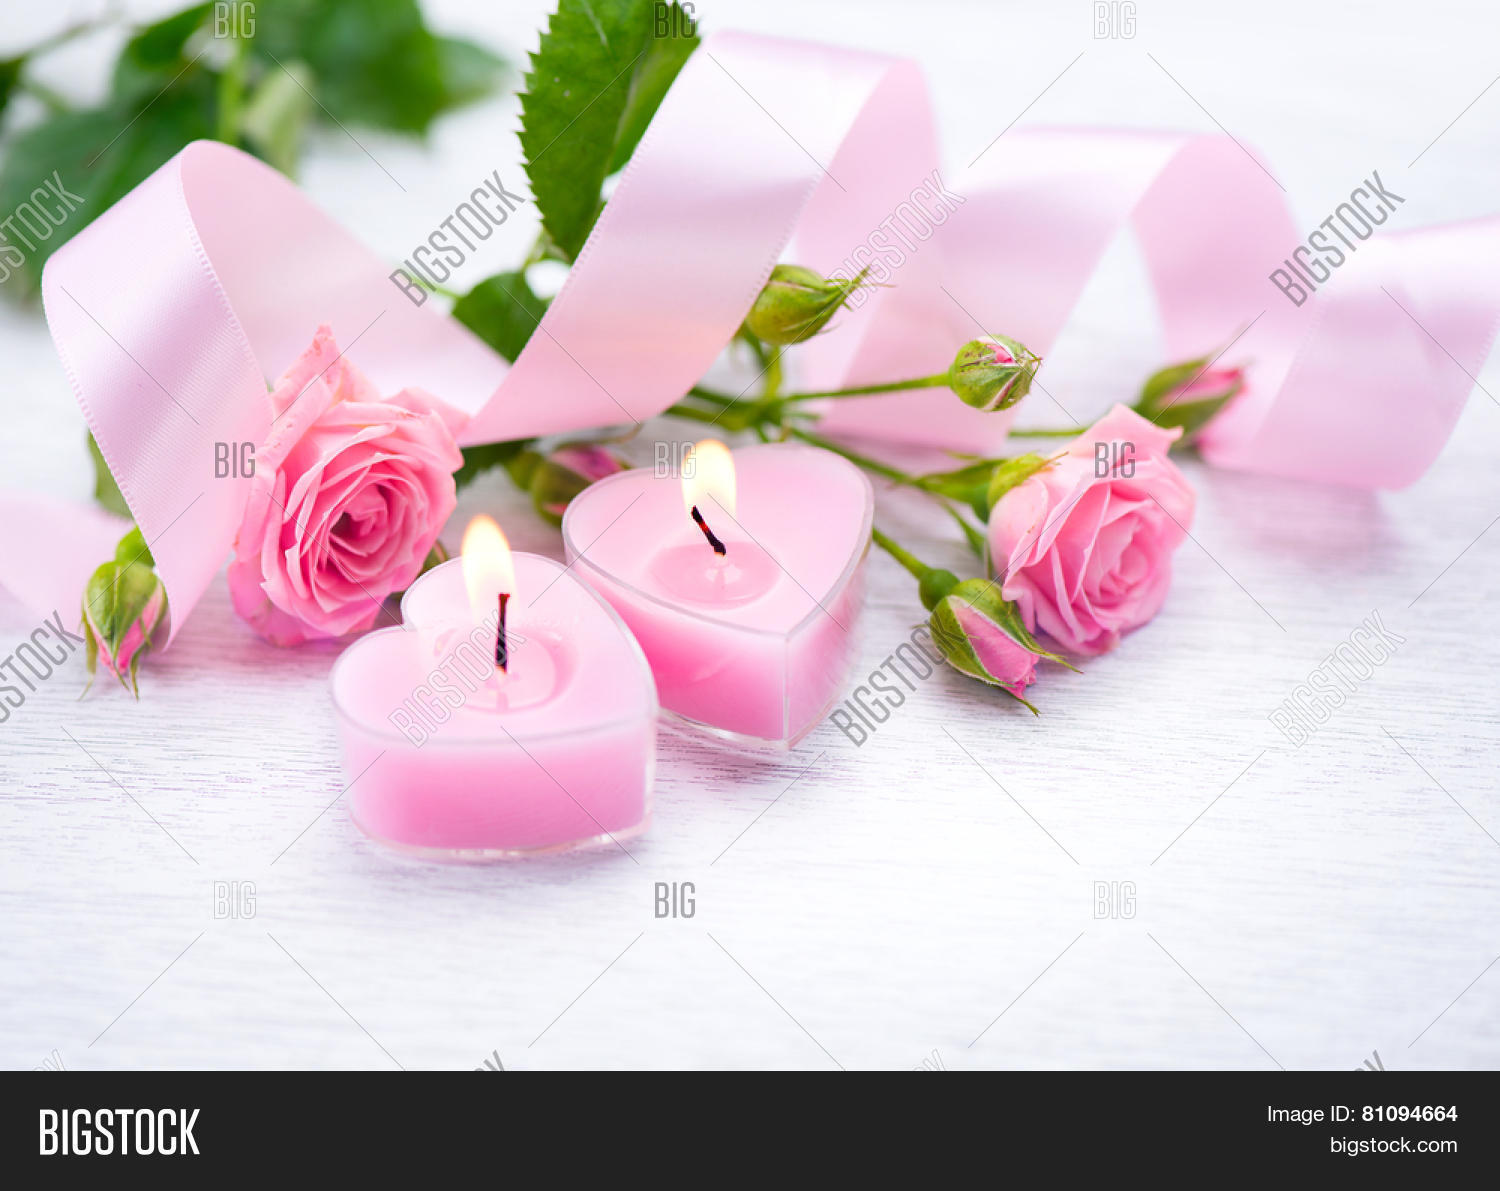 Valentine S Day Image Photo Free Trial Bigstock